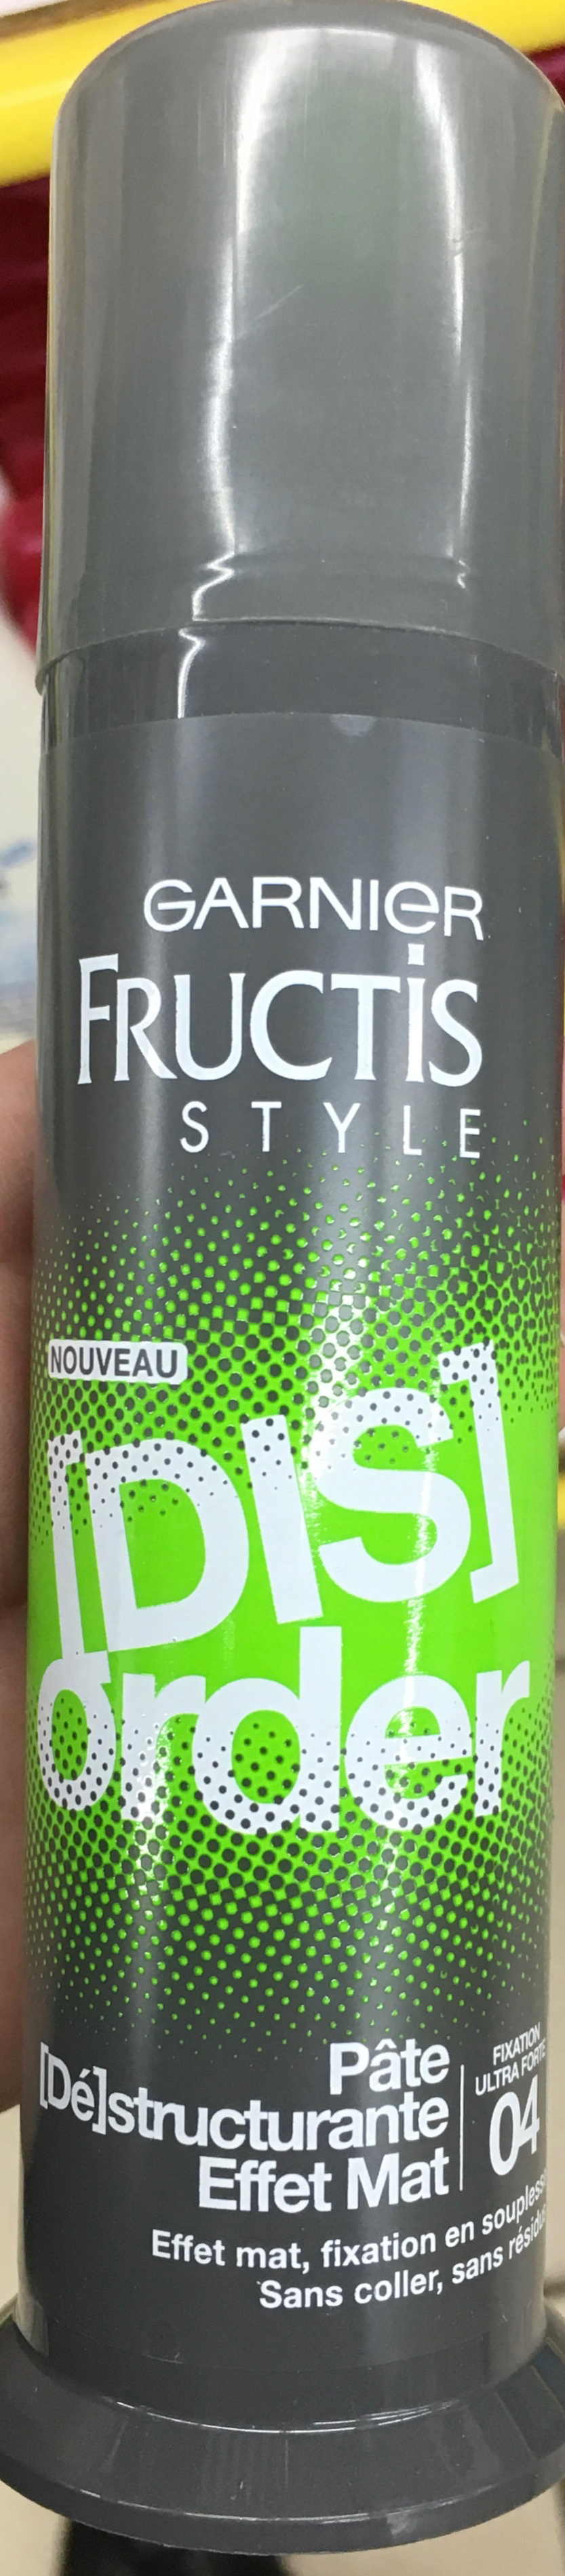 Fructis Style [DIS]order - Product - fr